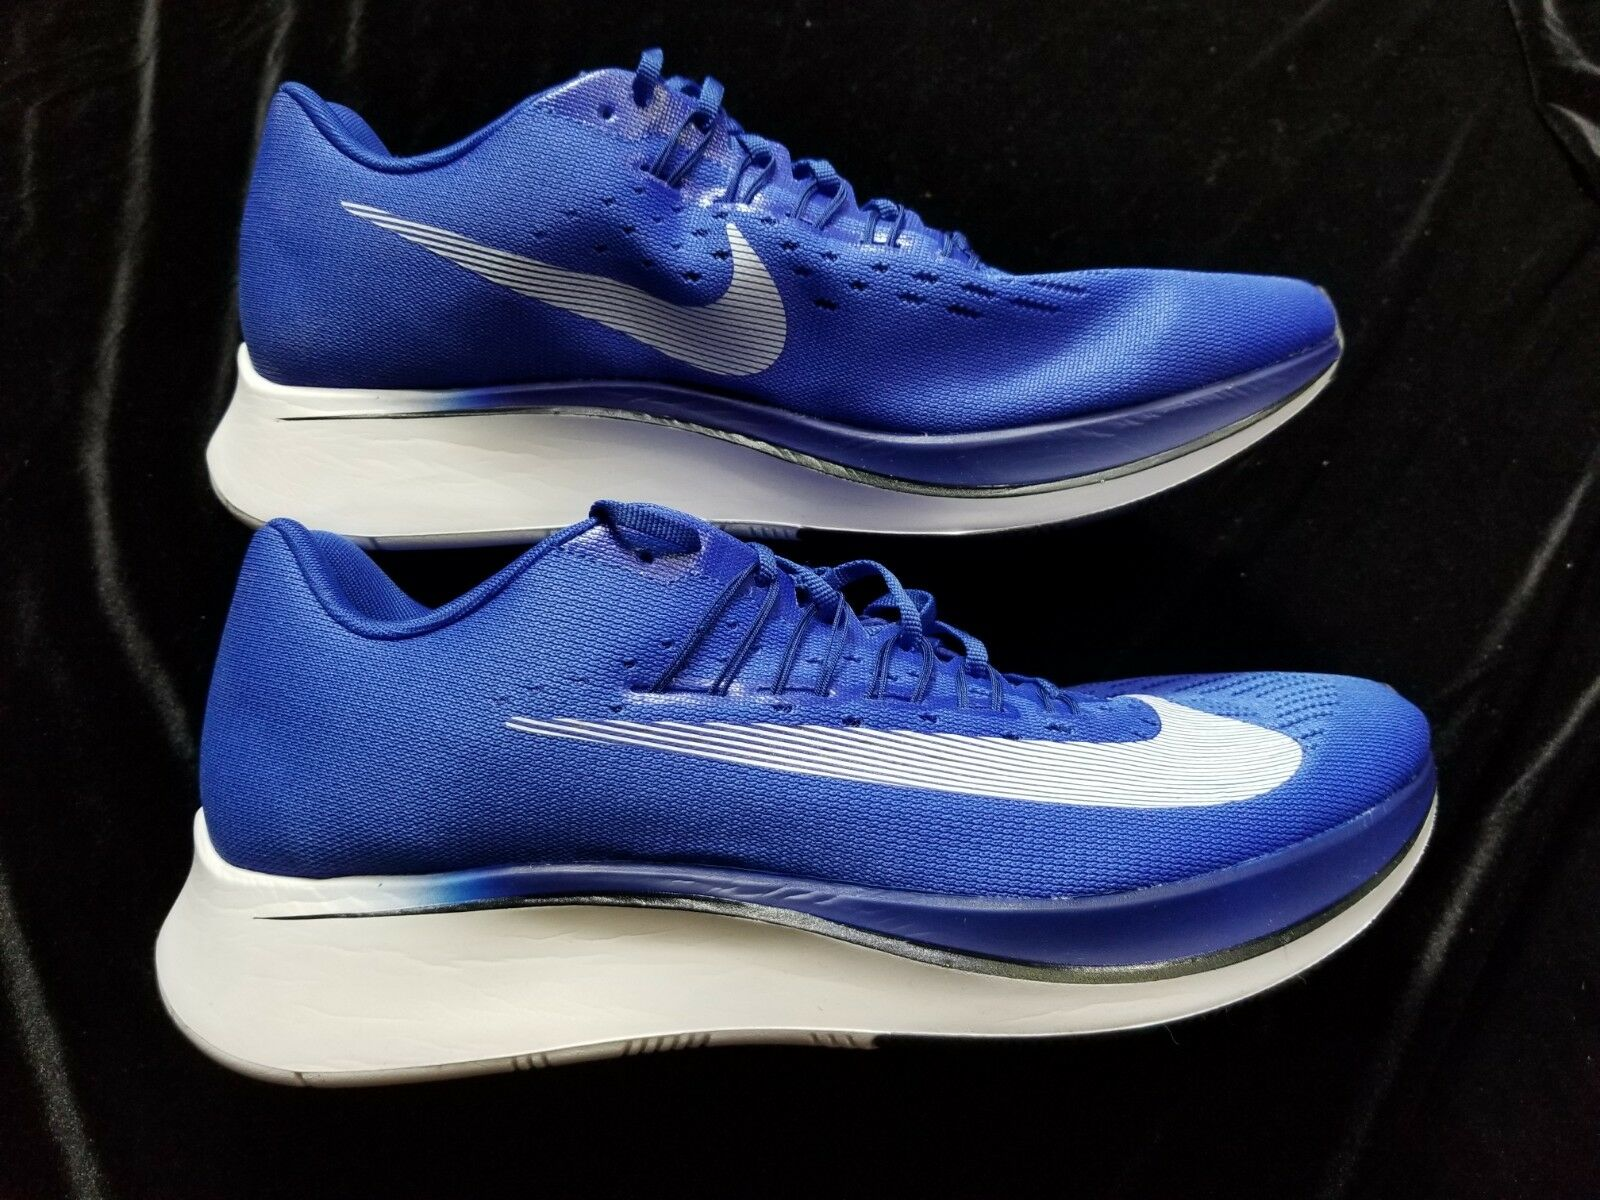 +New  MENS  NIKE  ZOOM FLY   blueE WHITE  SZ 12